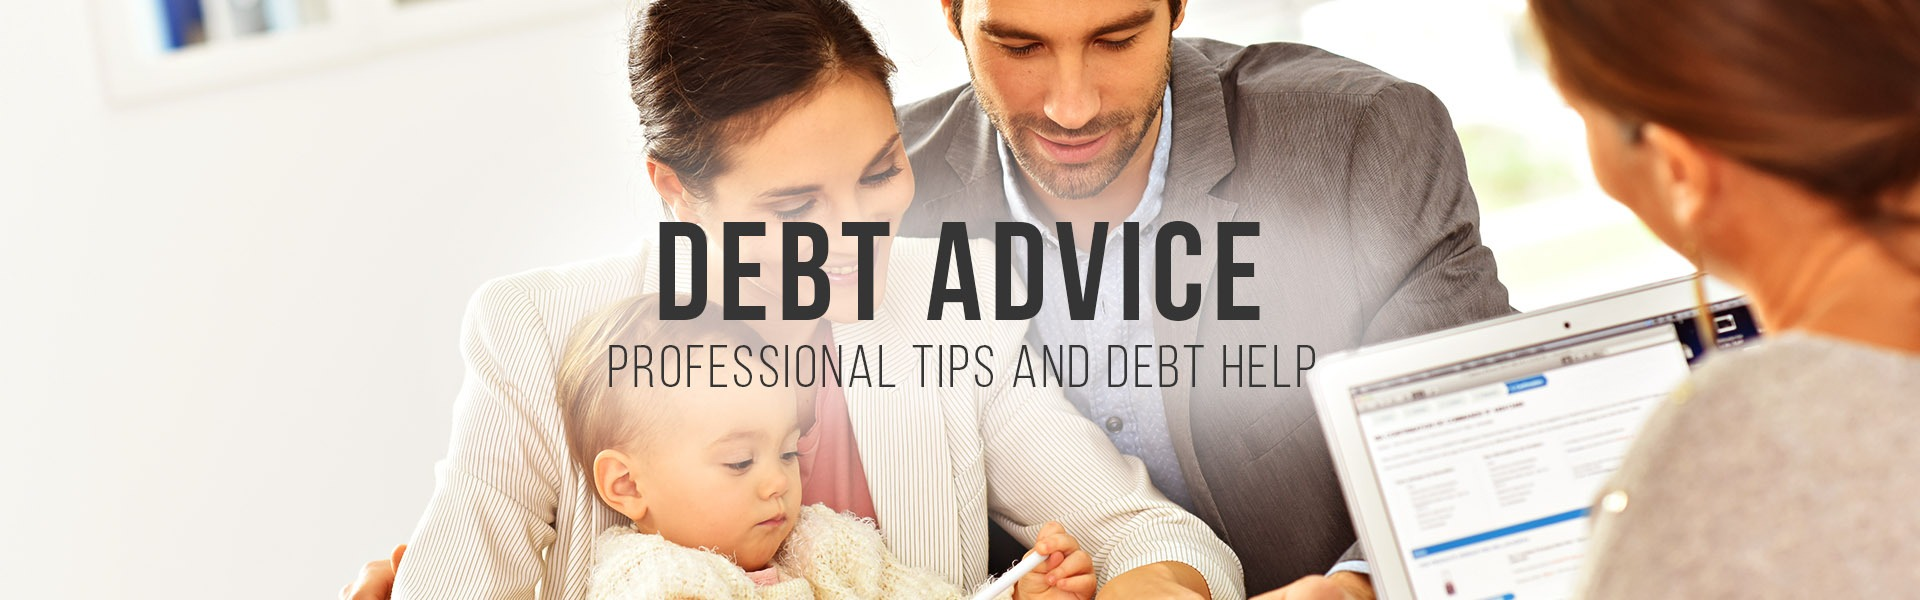 debt-advice-banner